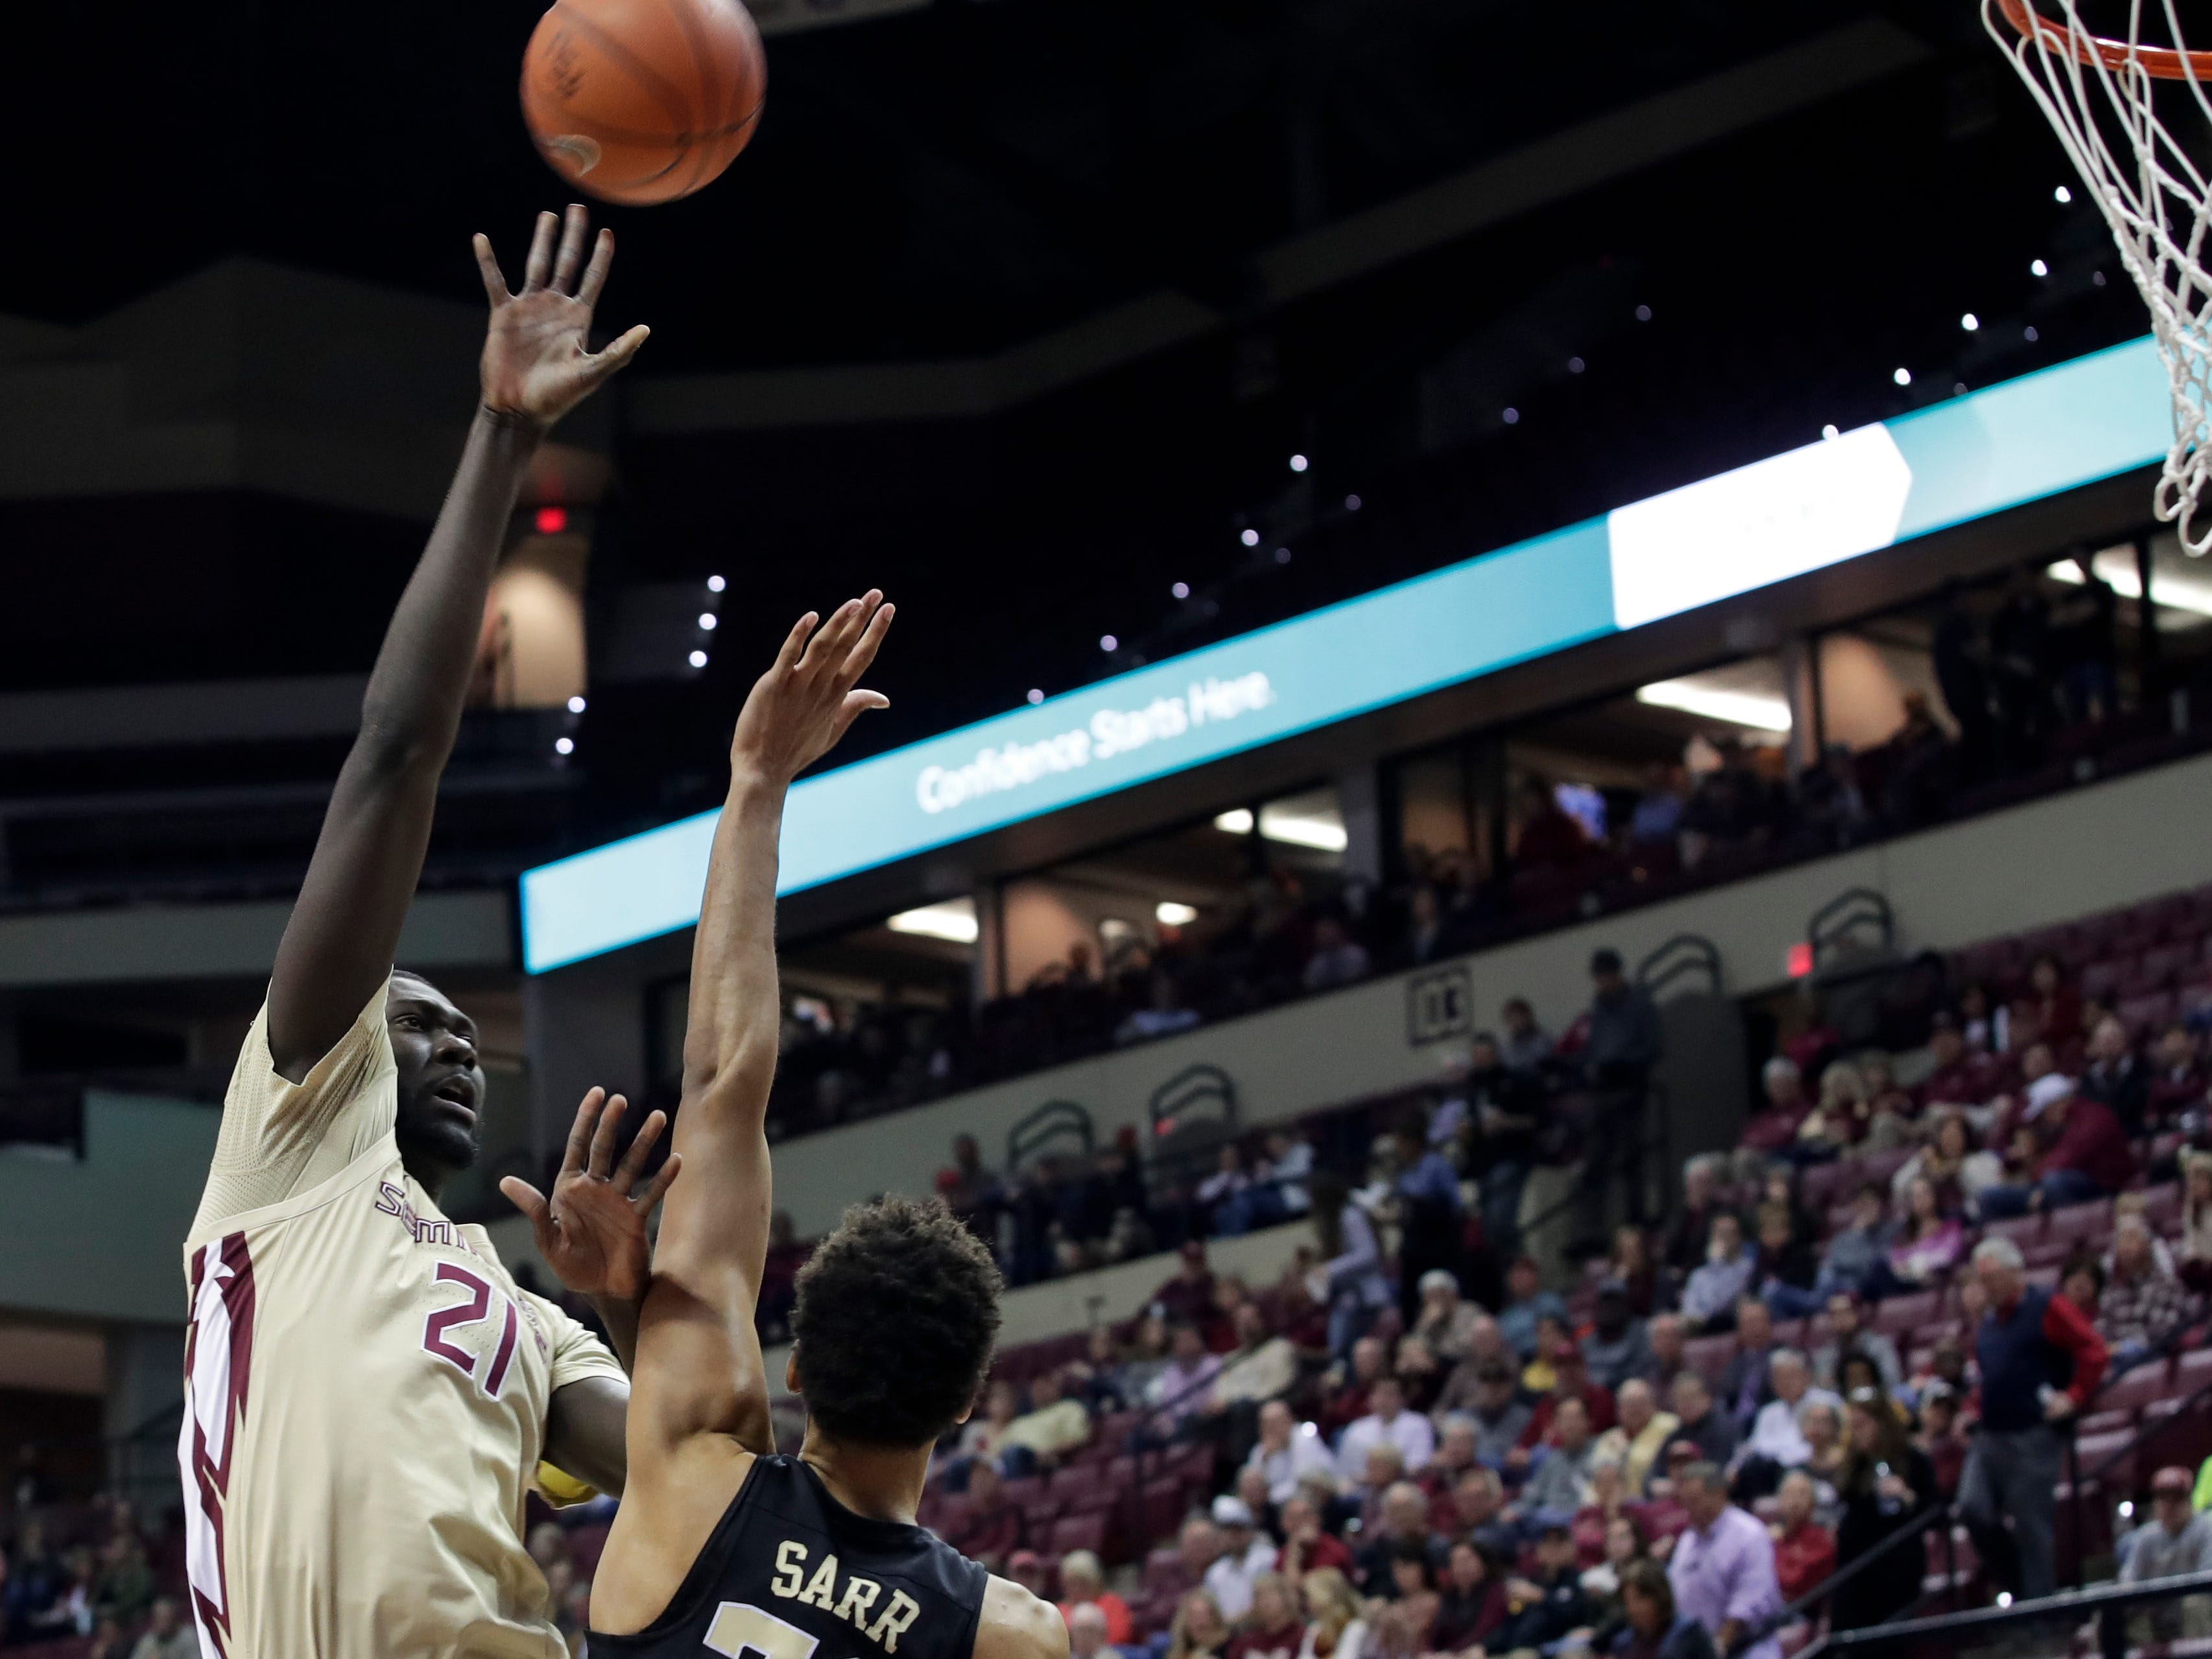 Florida State Seminoles center Christ Koumadje (21) puts up a shot during a game between FSU and Wake Forest at the Donald L. Tucker Civic Center Wednesday, Feb. 13, 2019.